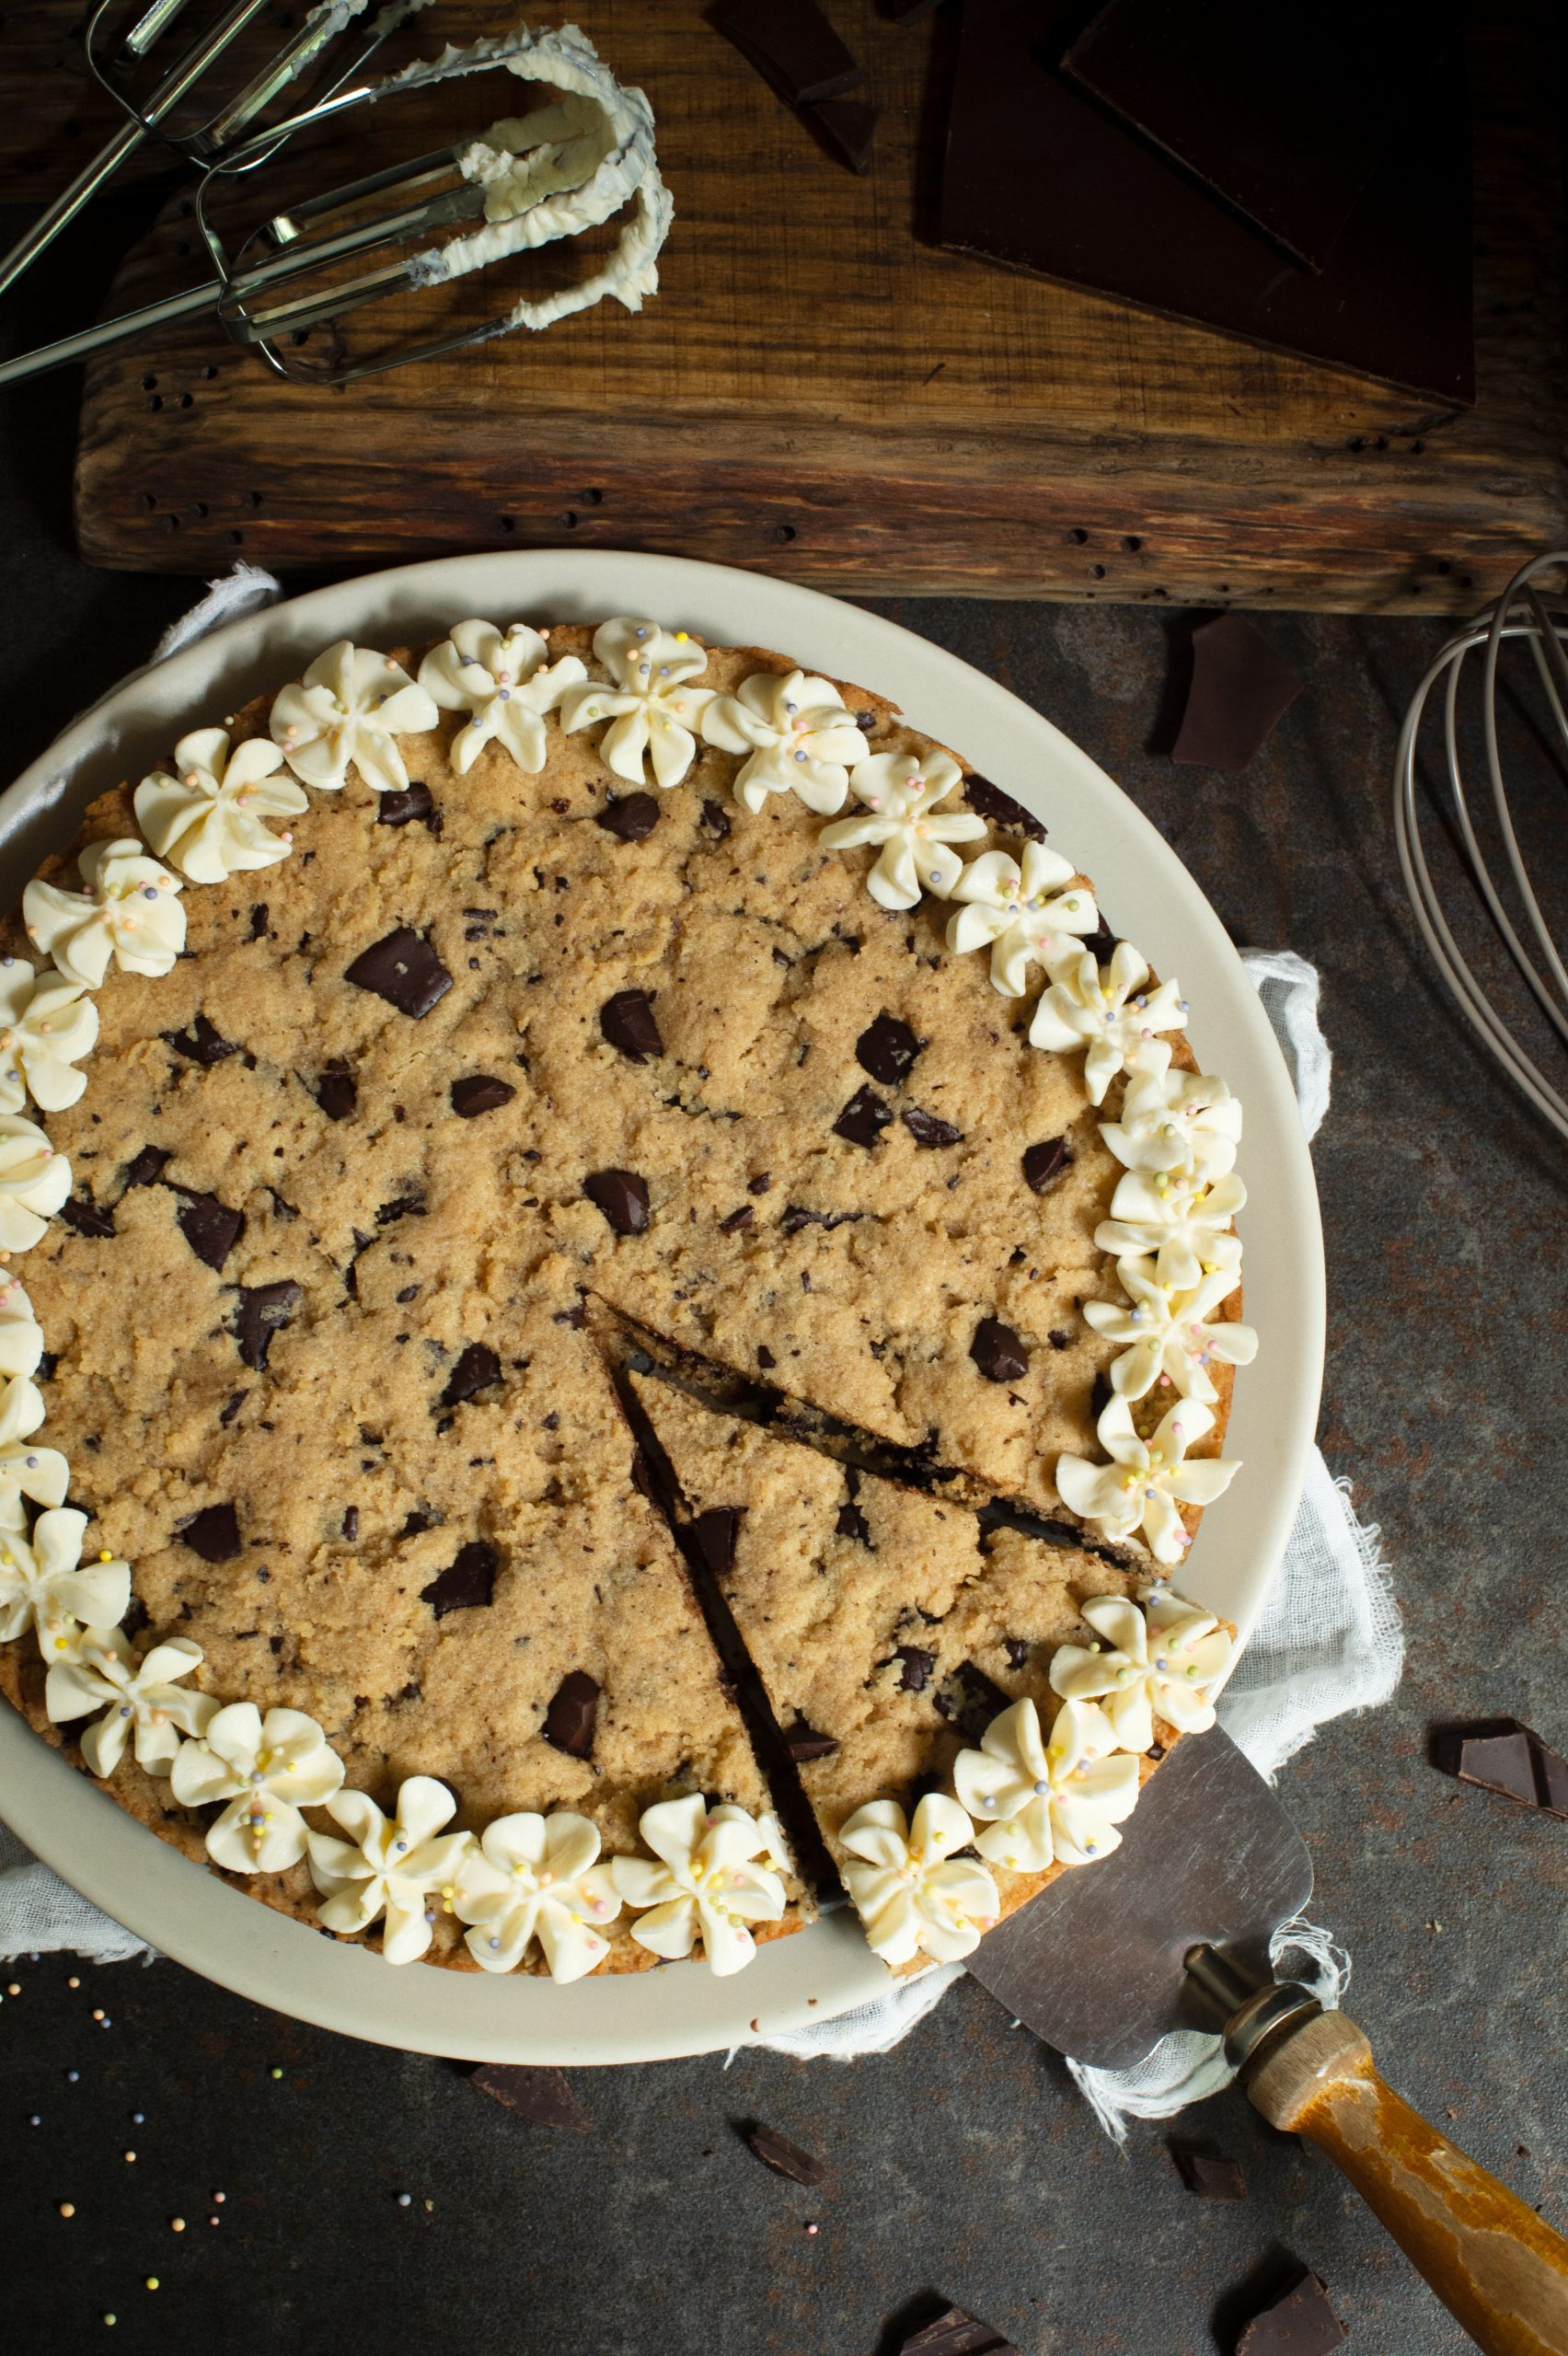 Overhead photo of slice of Keto cookie cake being lifted with a pie cutter